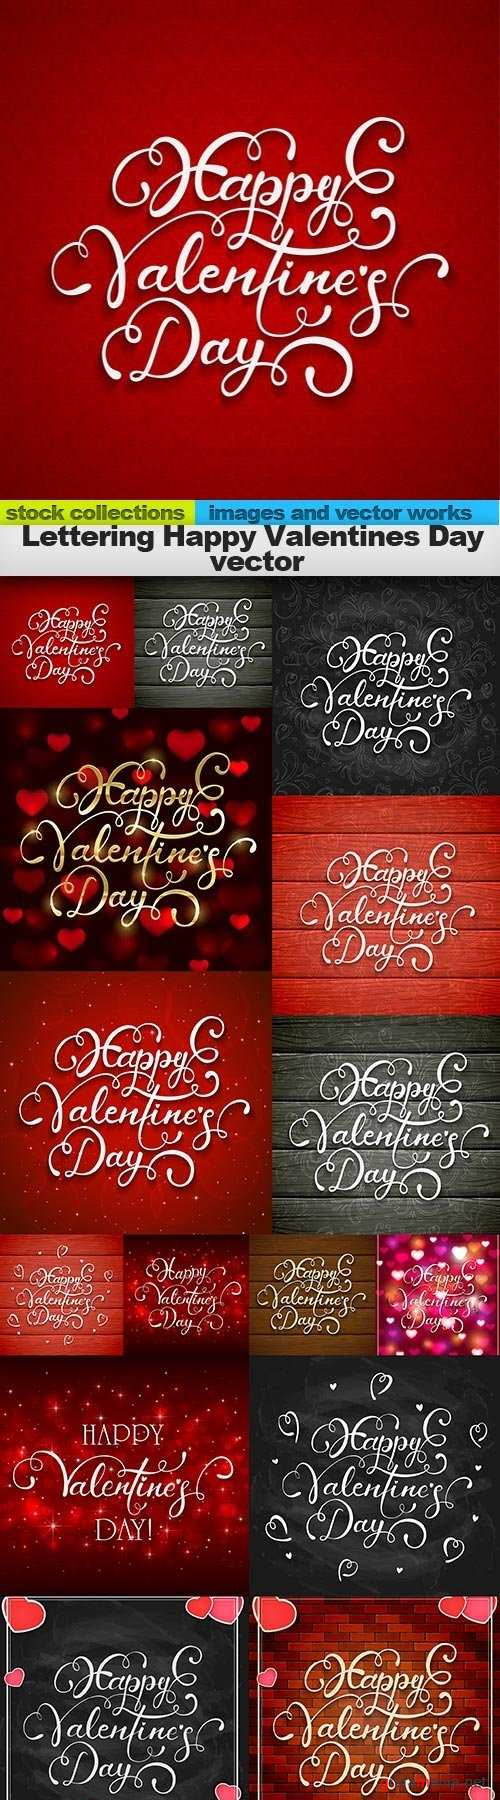 Lettering Happy Valentines Day vector, 15 x EPS